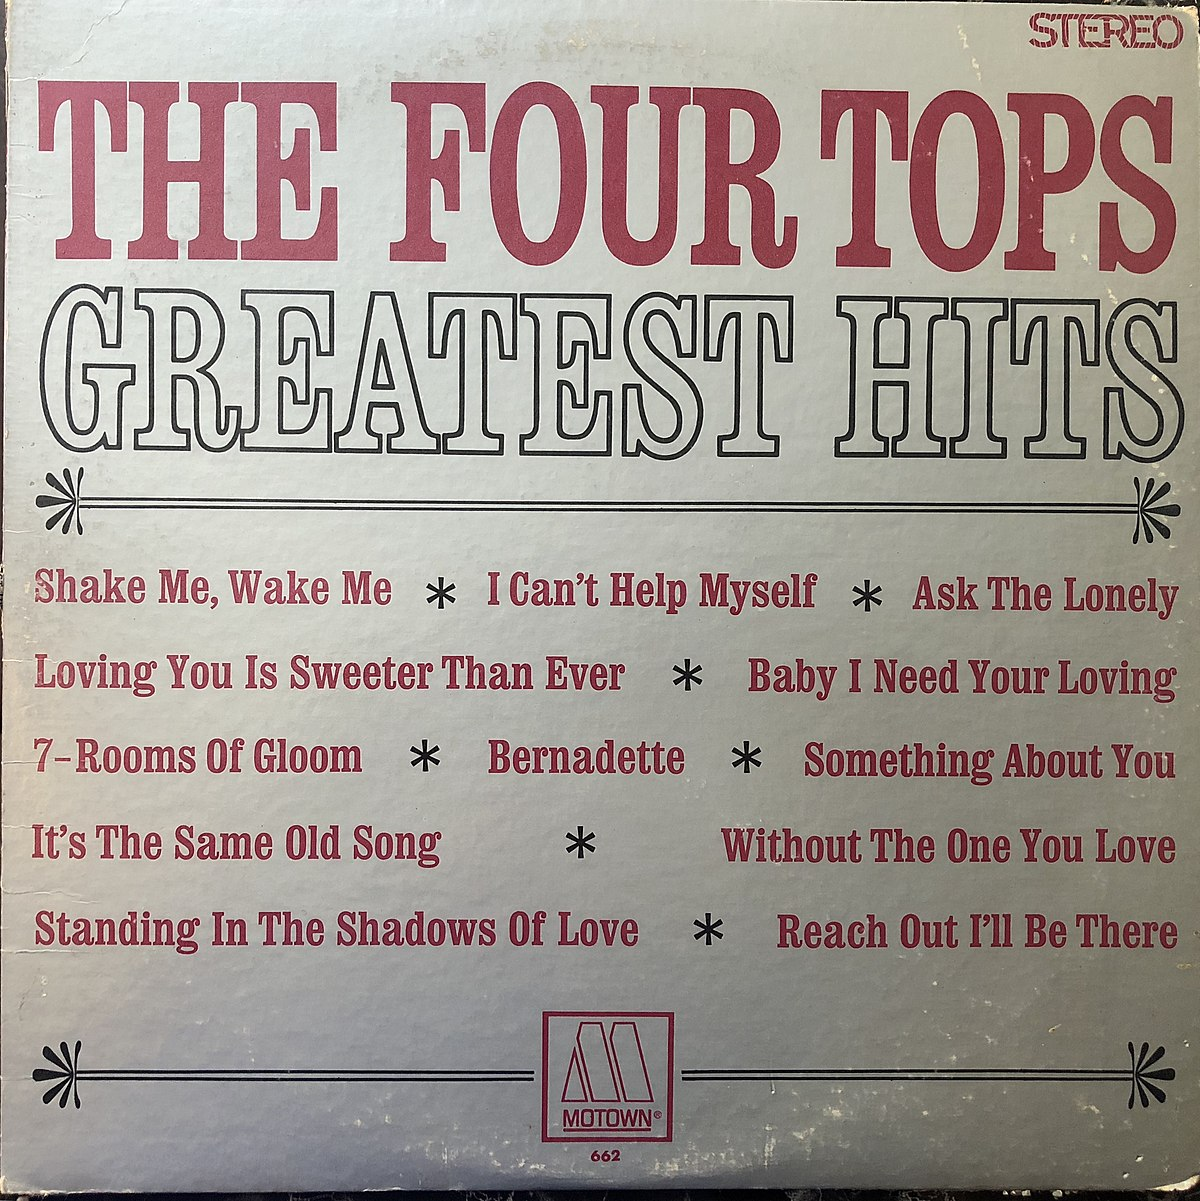 The Four Tops Greatest Hits - Wikipedia